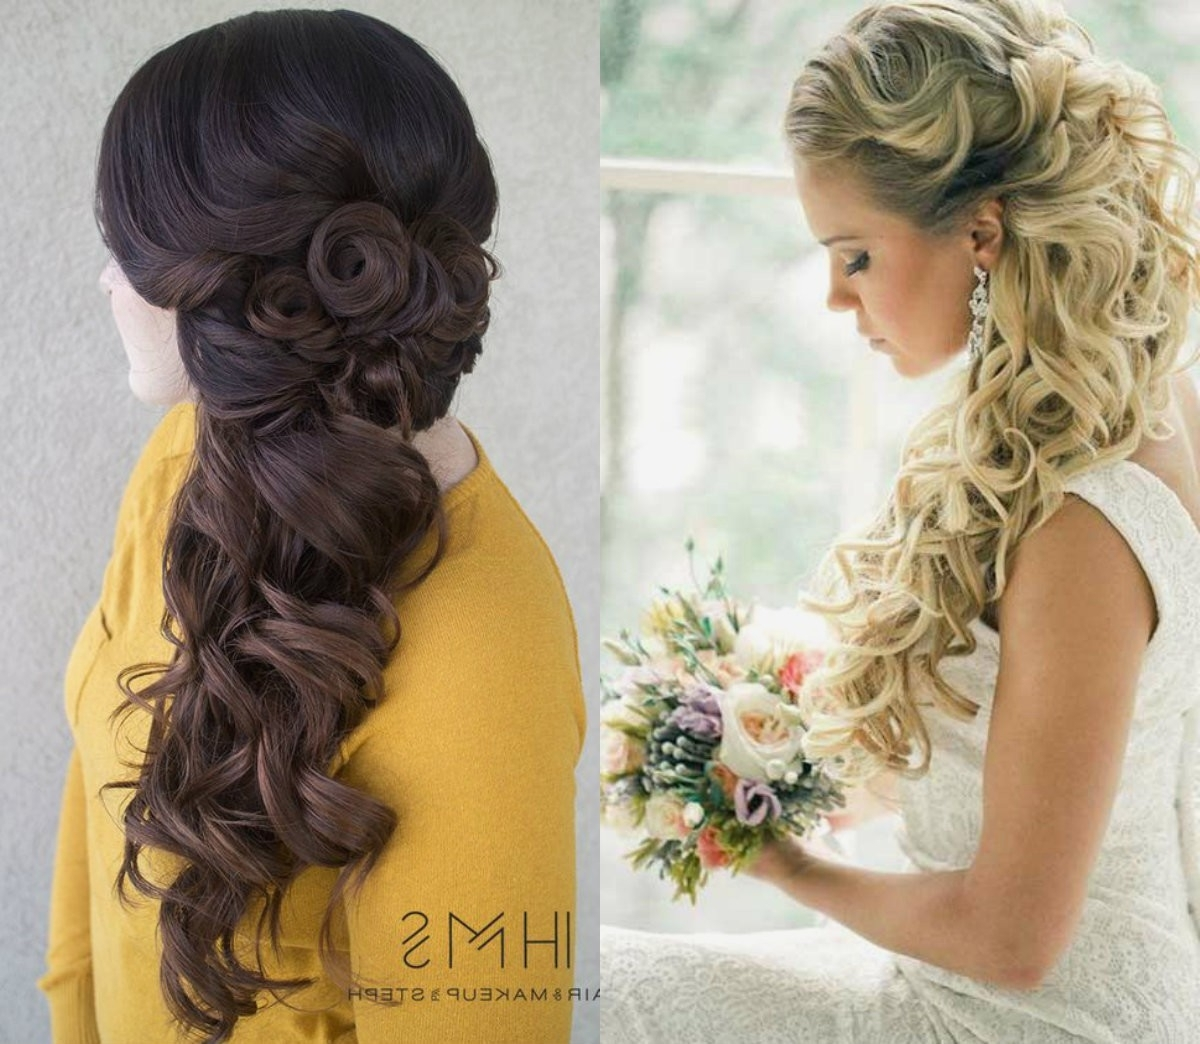 Trendy Wedding Hairstyles To The Side Pertaining To Long Hairstyles : Best Side Wedding Hairstyles Long Hair Picture To (View 9 of 15)